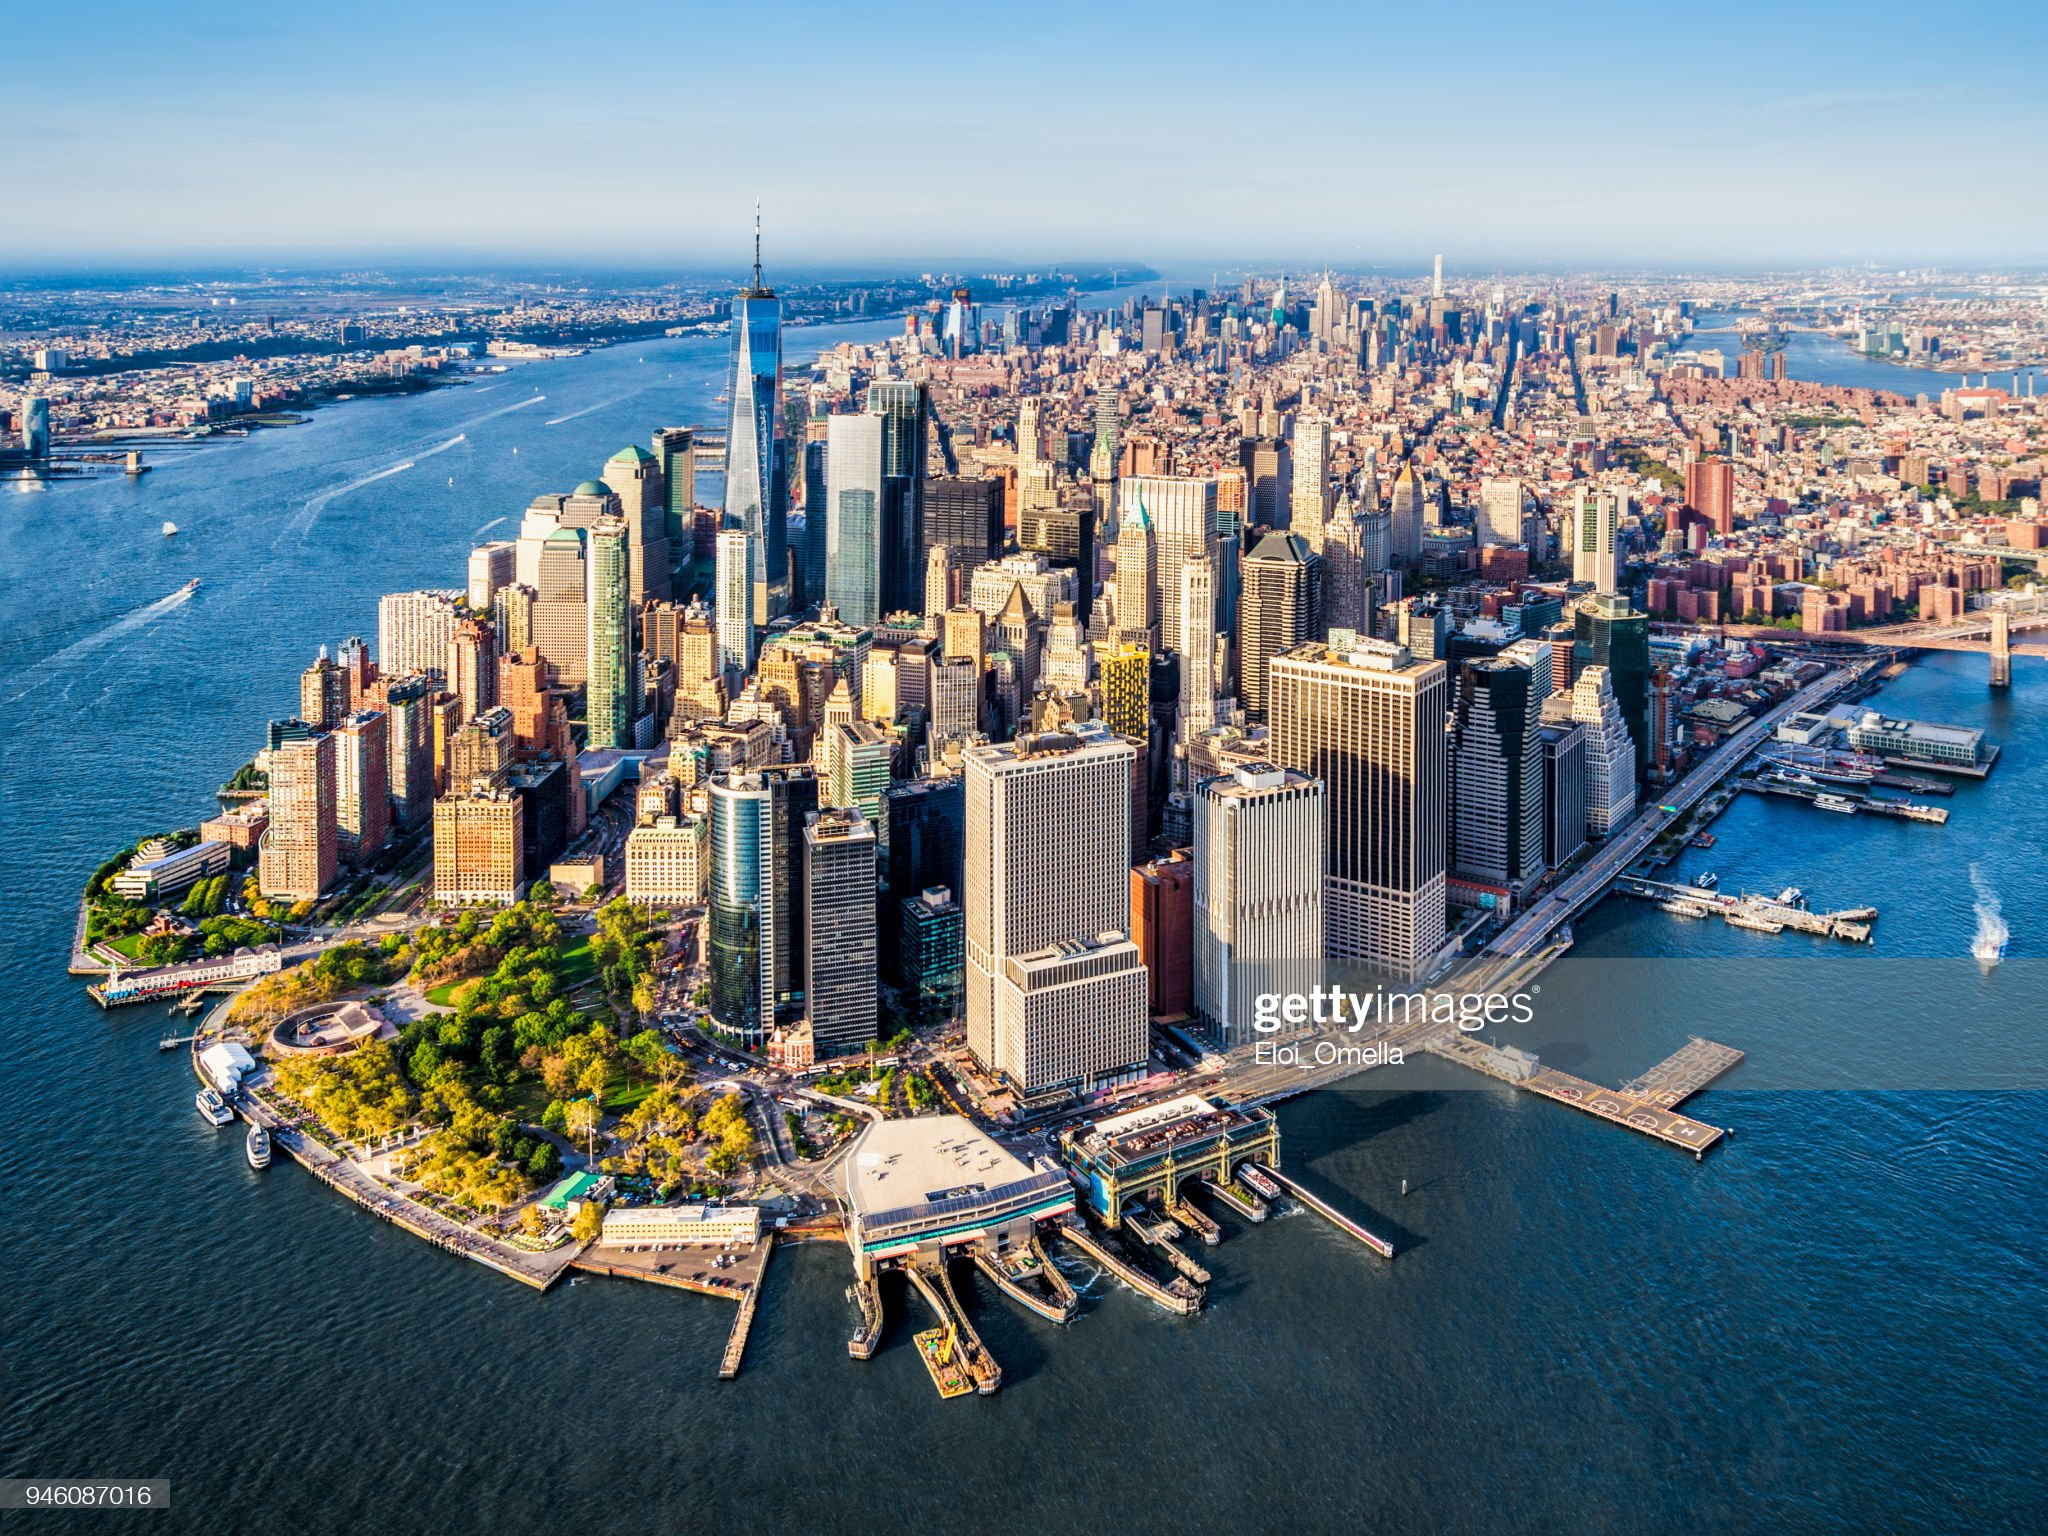 https://media.gettyimages.com/photos/aerial-view-of-lower-manhattan-new-york-picture-id946087016?s=2048x2048